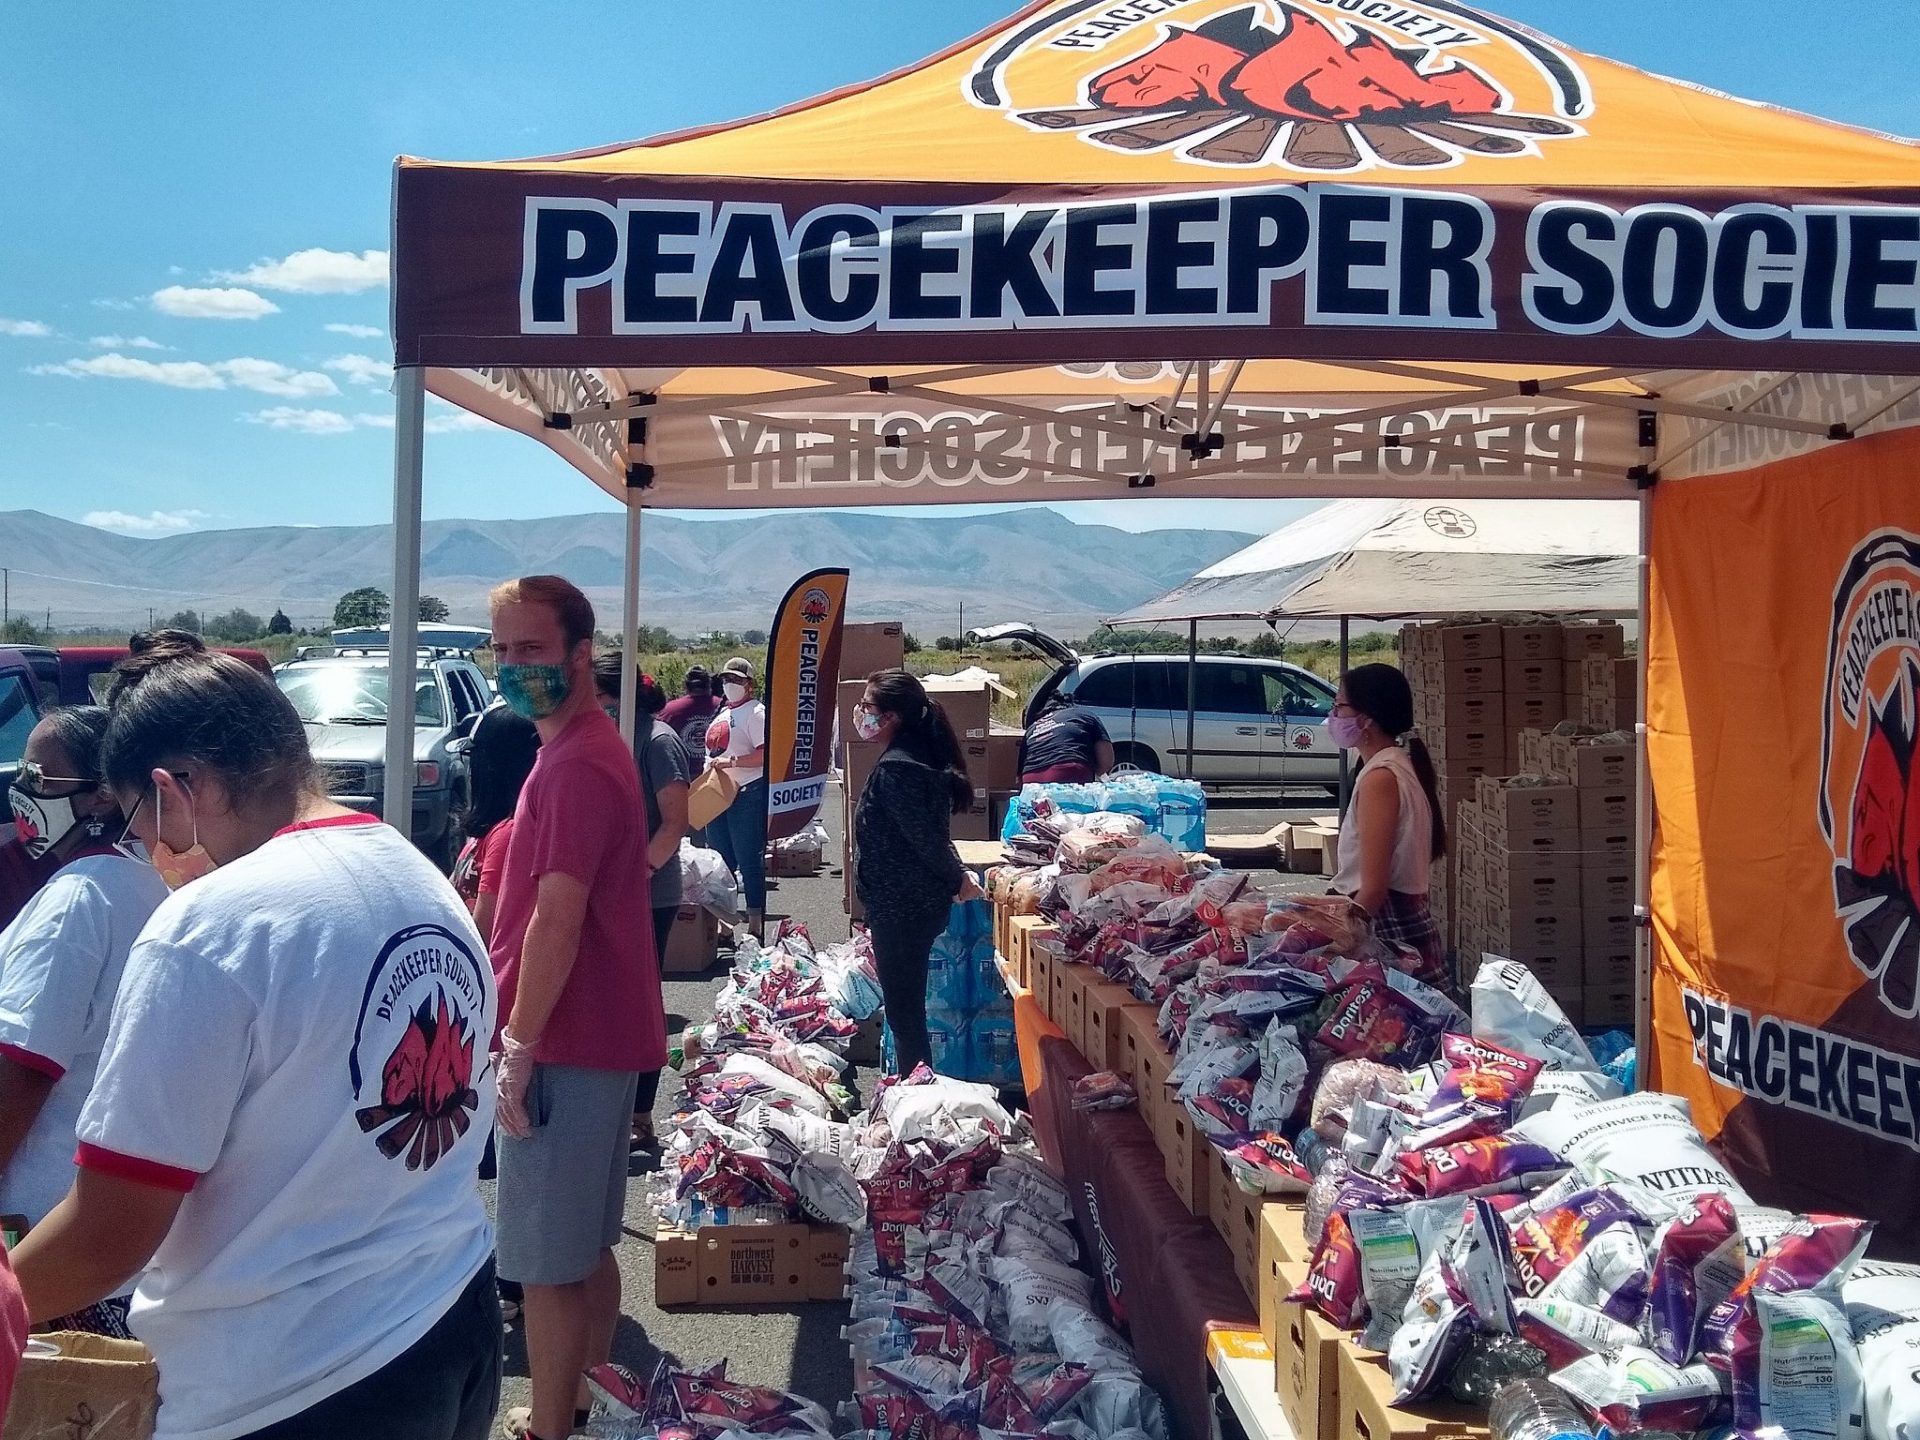 Friday, August 21st, Peacekeeper Society Drive-thru Food Distribution